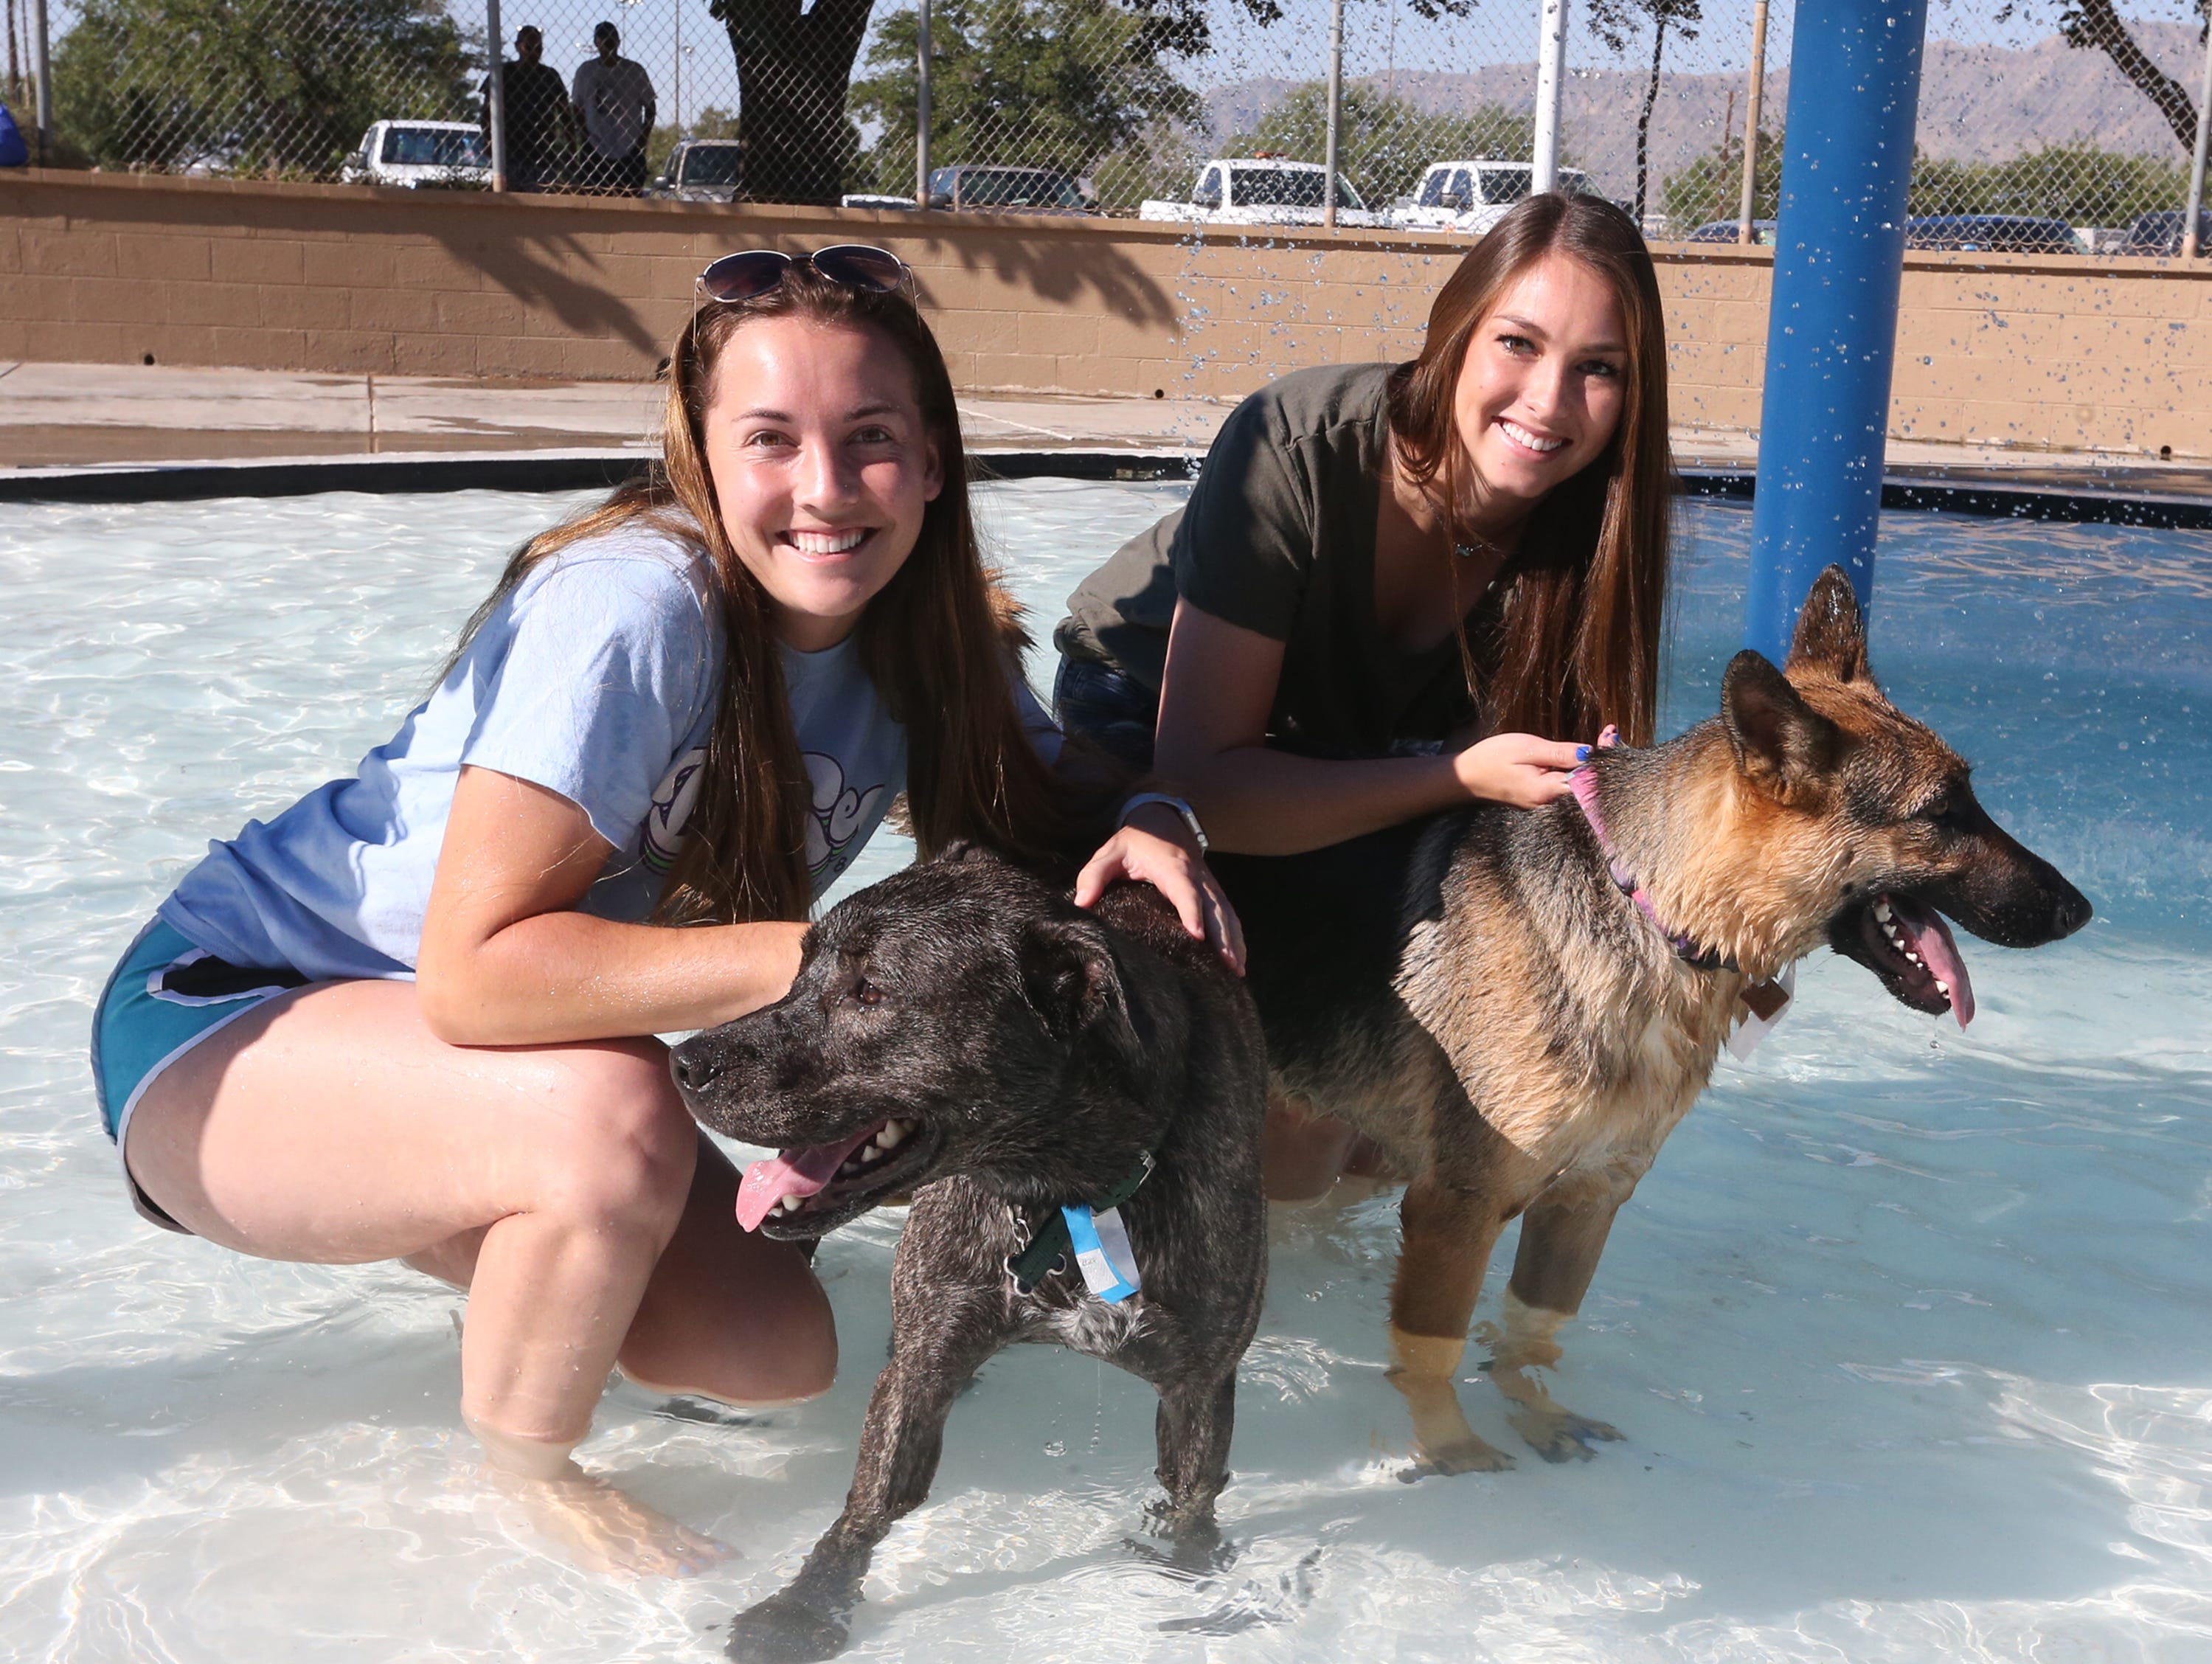 NMSU students Janea Eberly, left, and Marissa Alexander with their dogs Sunday.